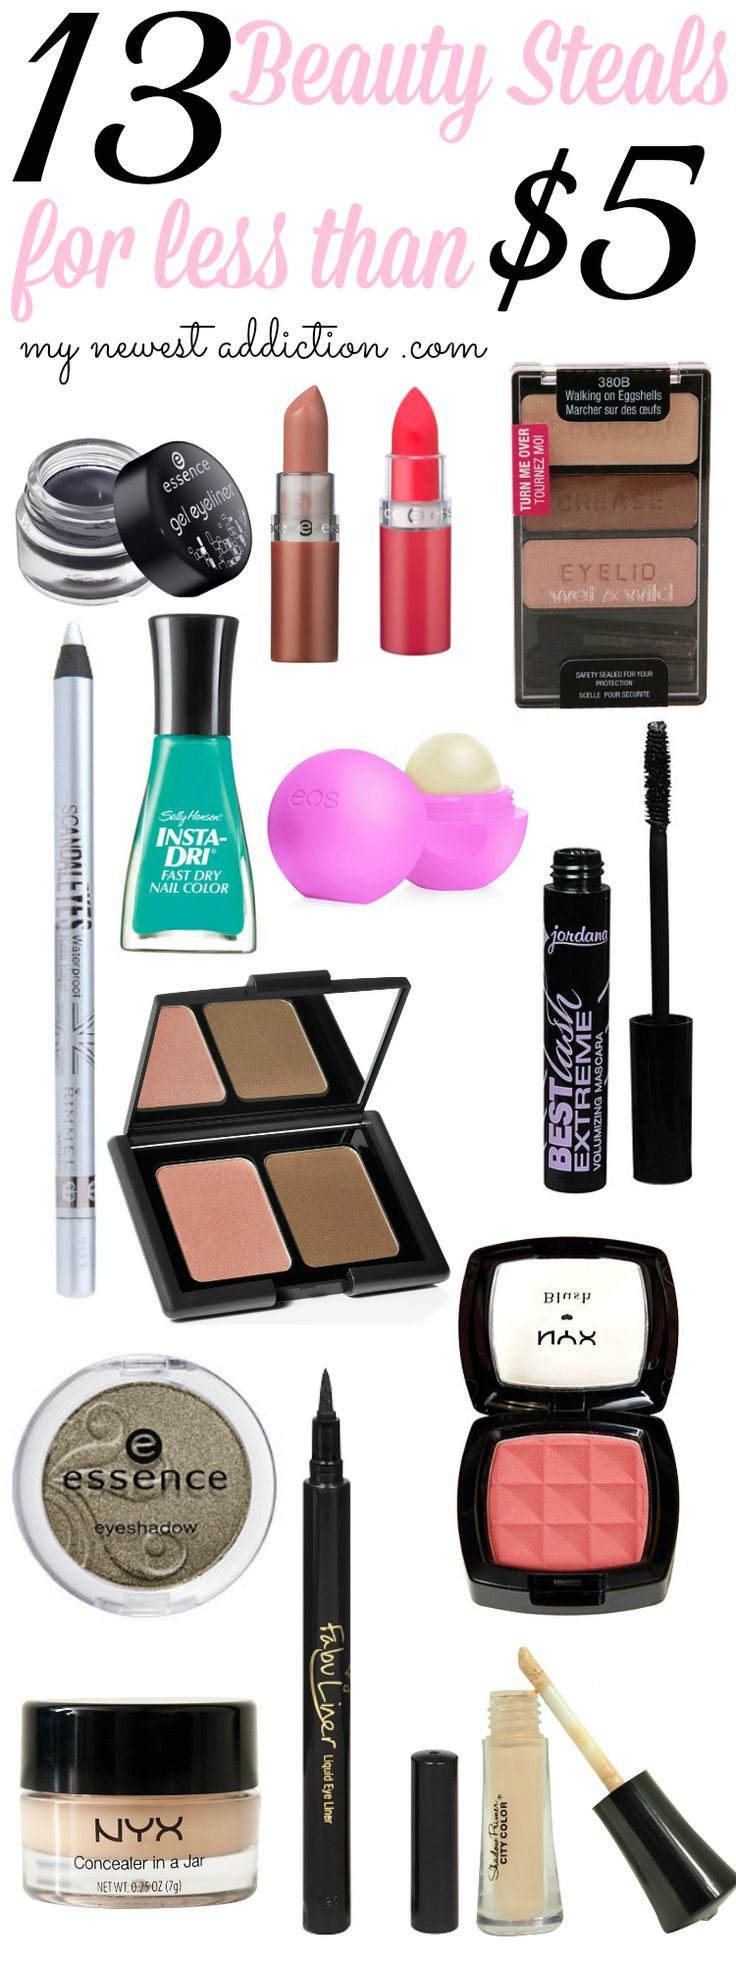 13 beauty steals less than $5